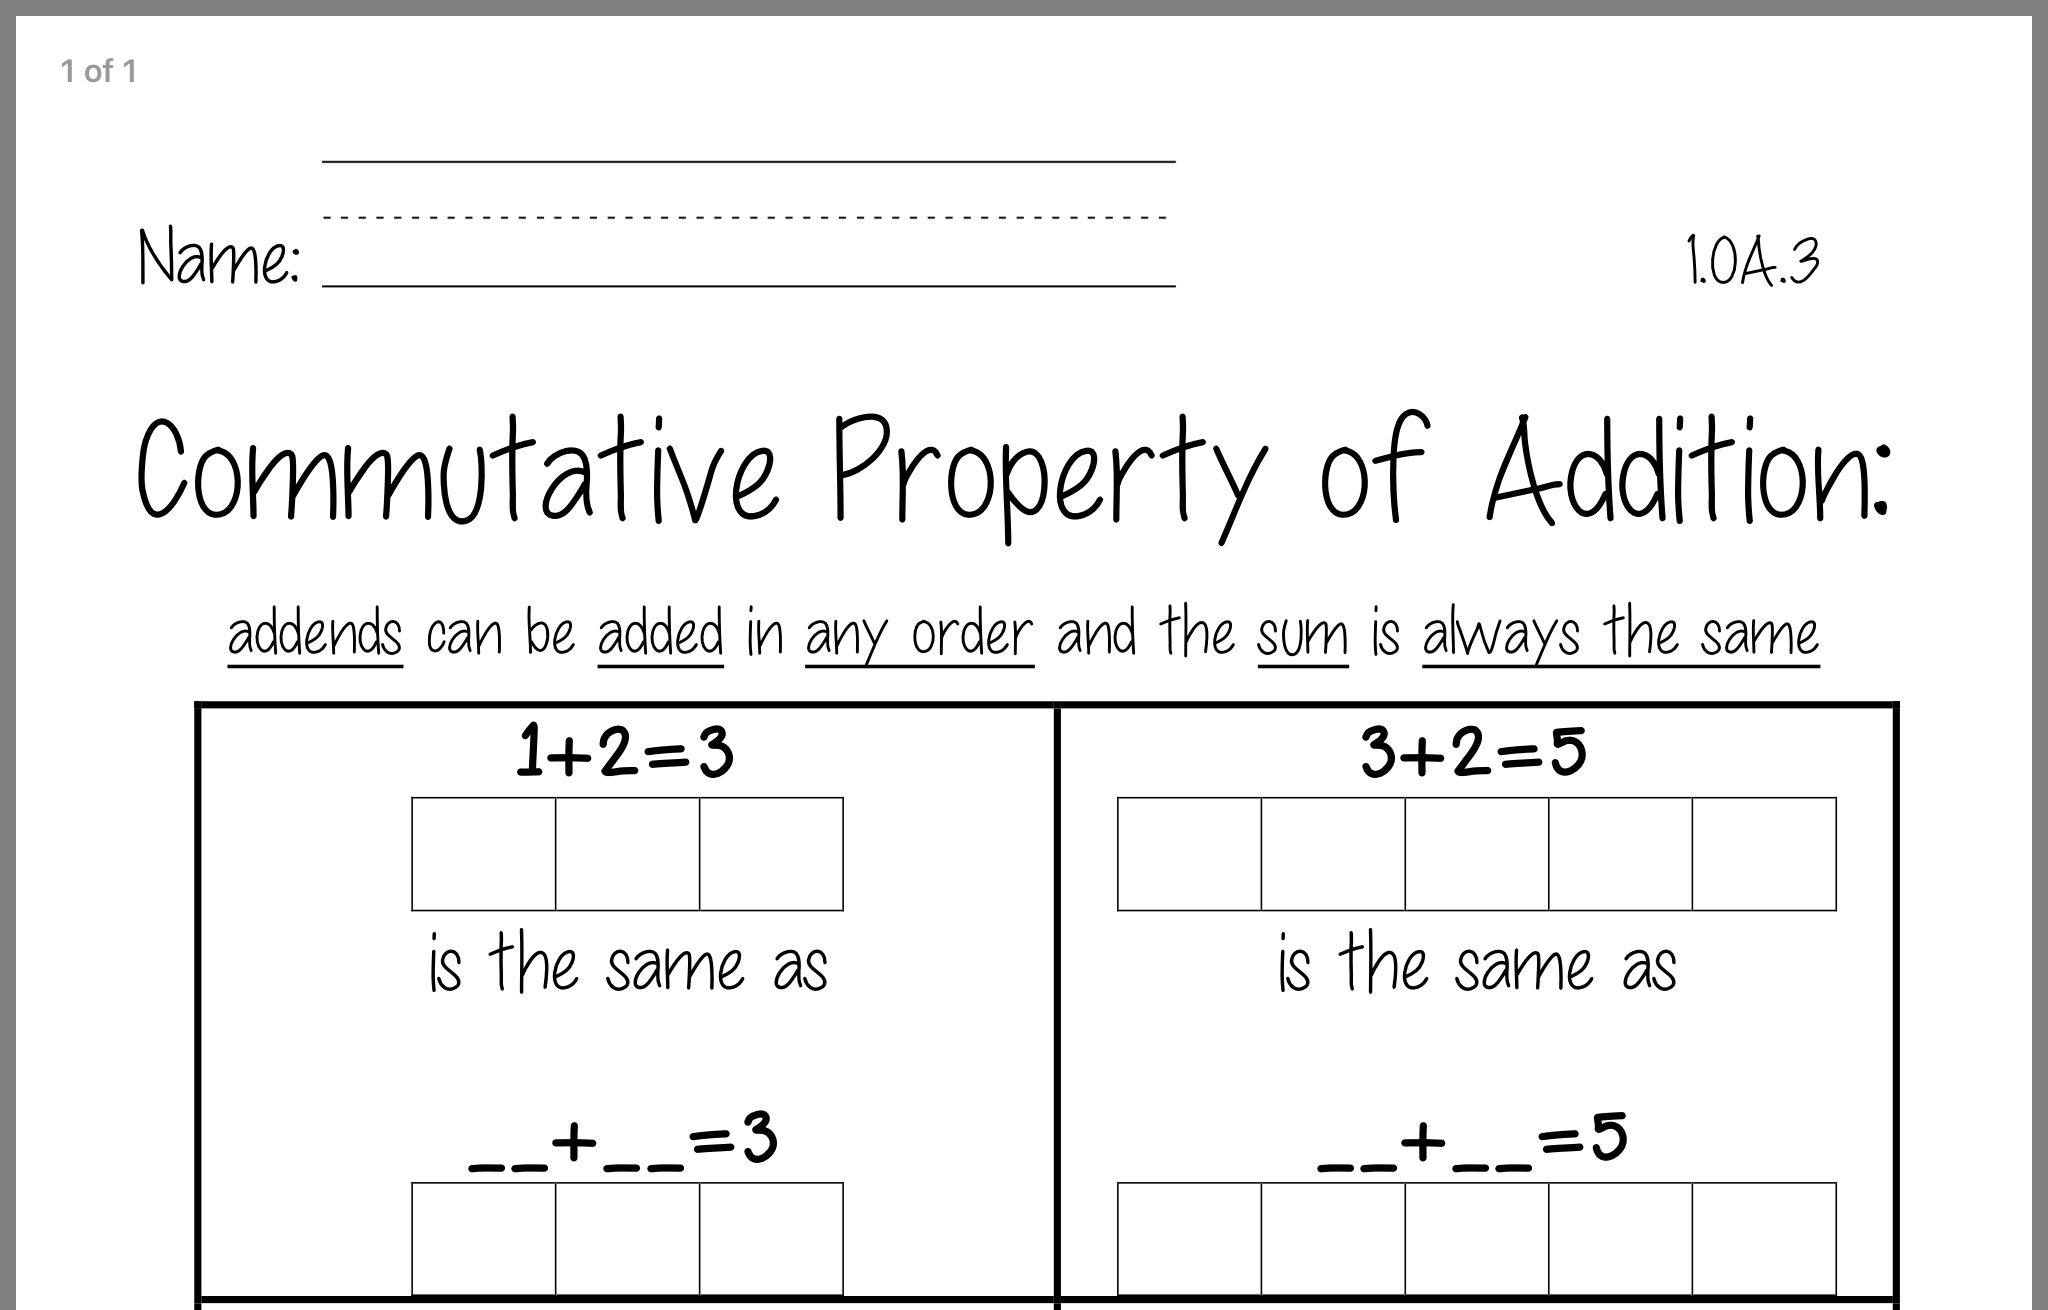 Pin By Darla Shumway On Commutative Property